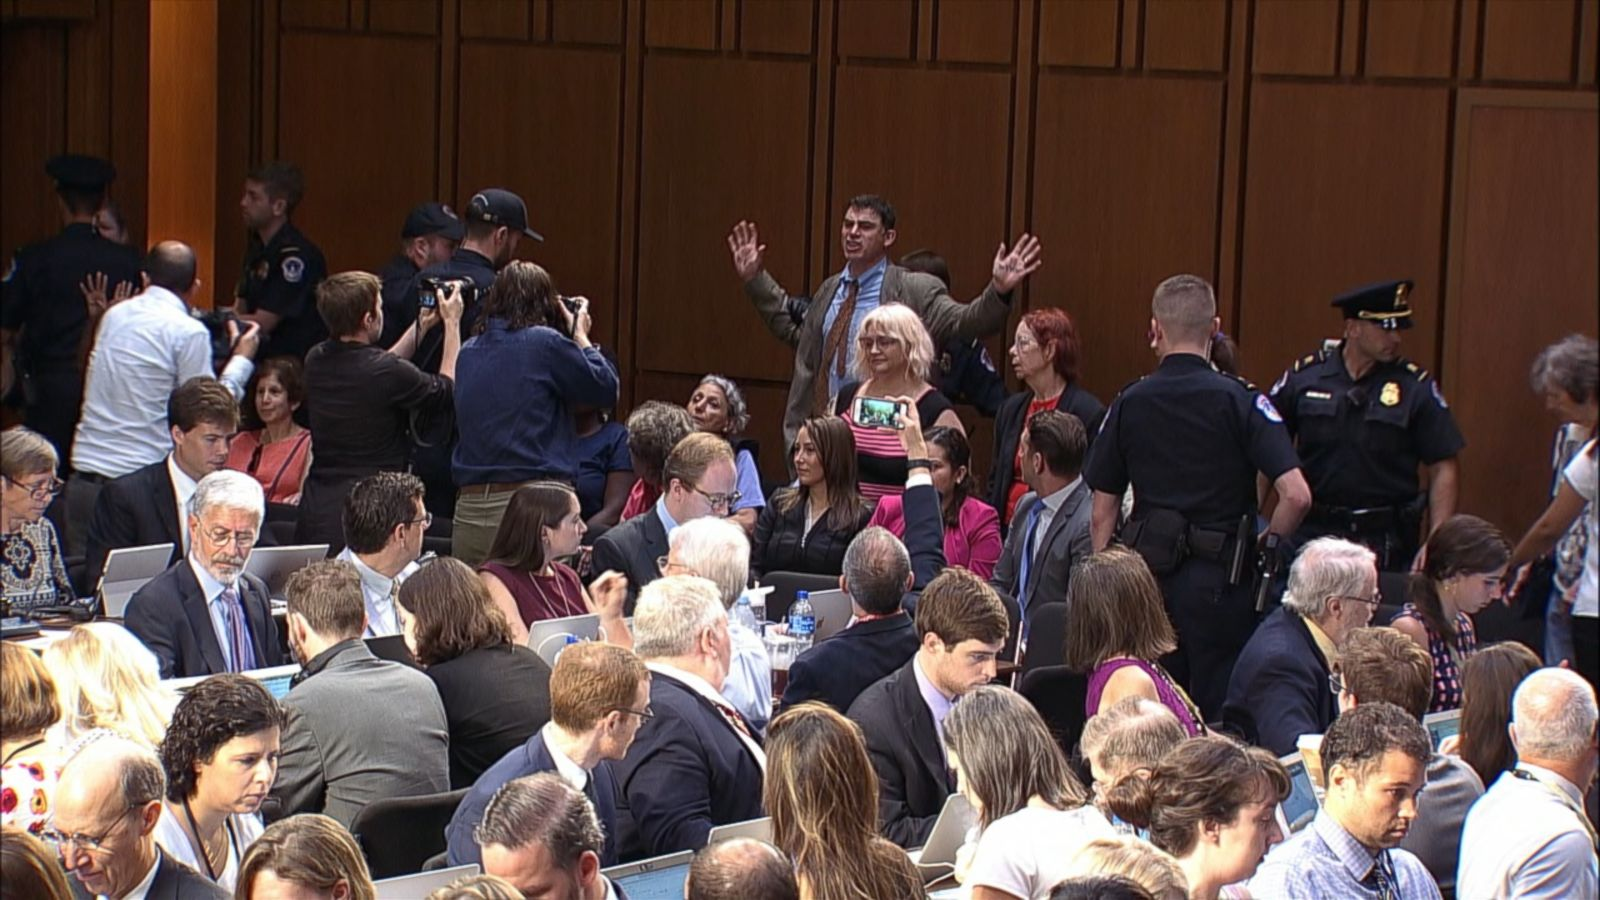 Image result for ANTI KAVANAUGH PROTESTS PHOTOS